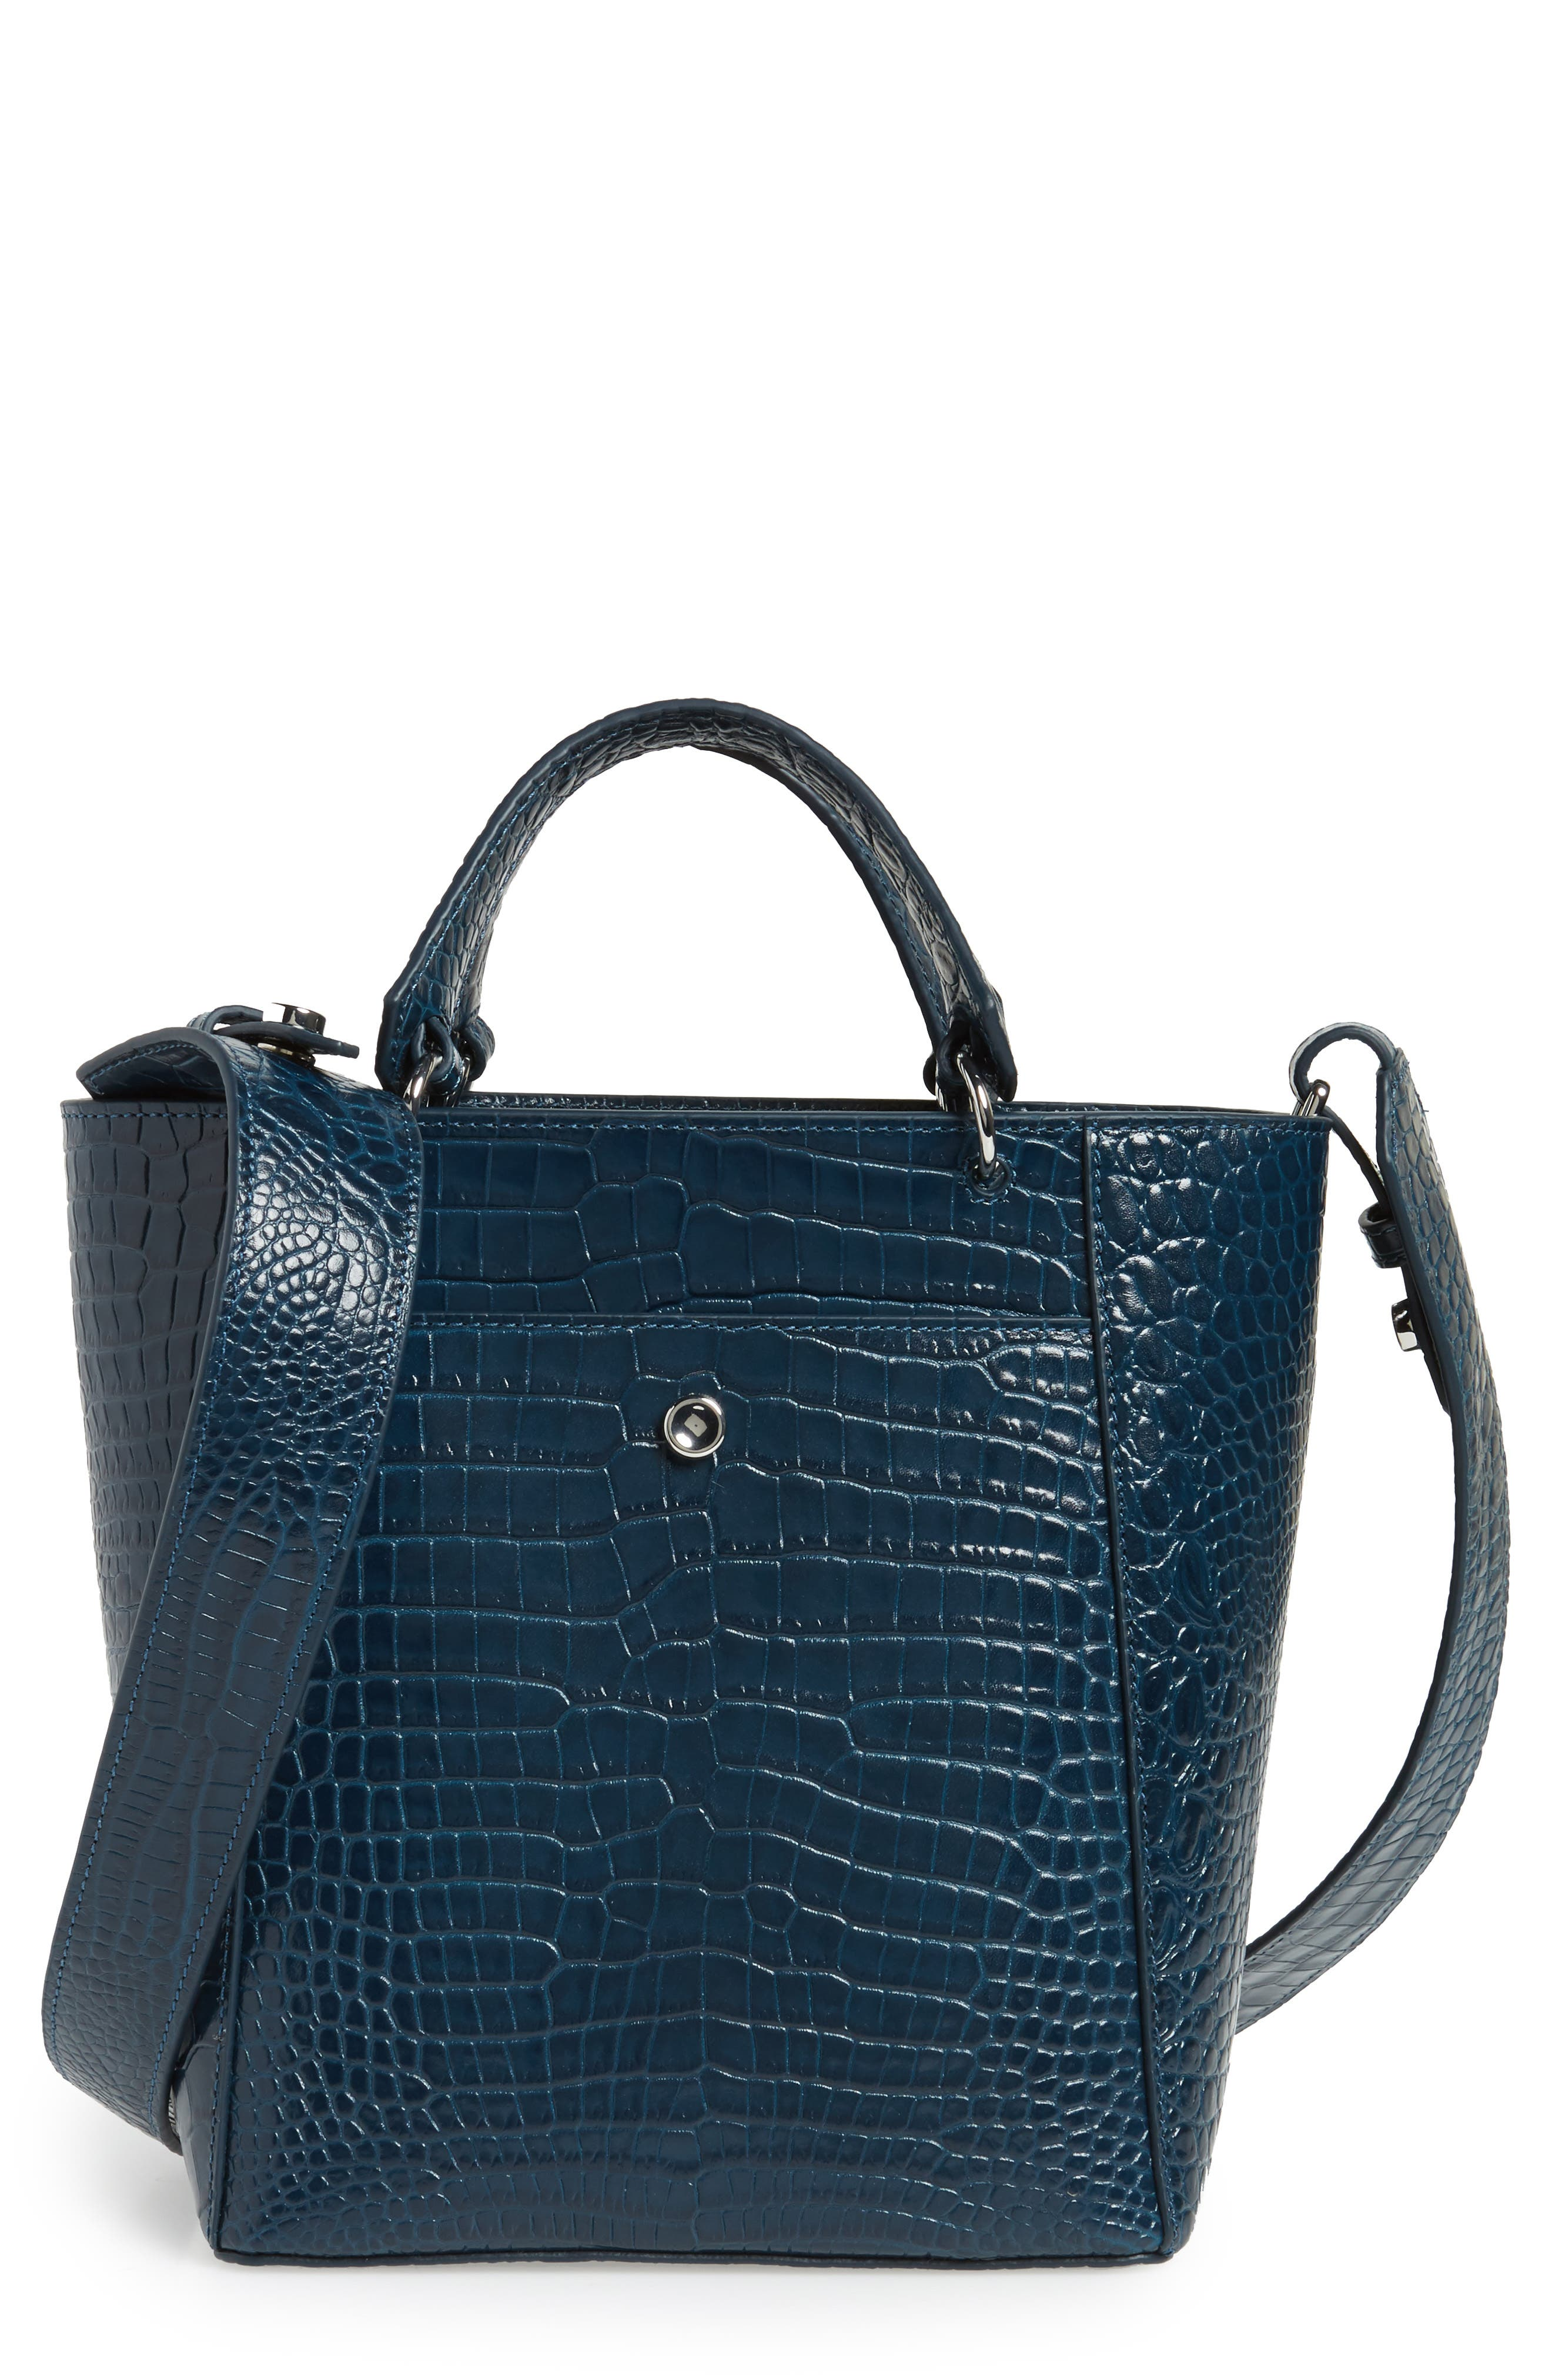 Main Image - Elizabeth and James Small Eloise Leather Tote